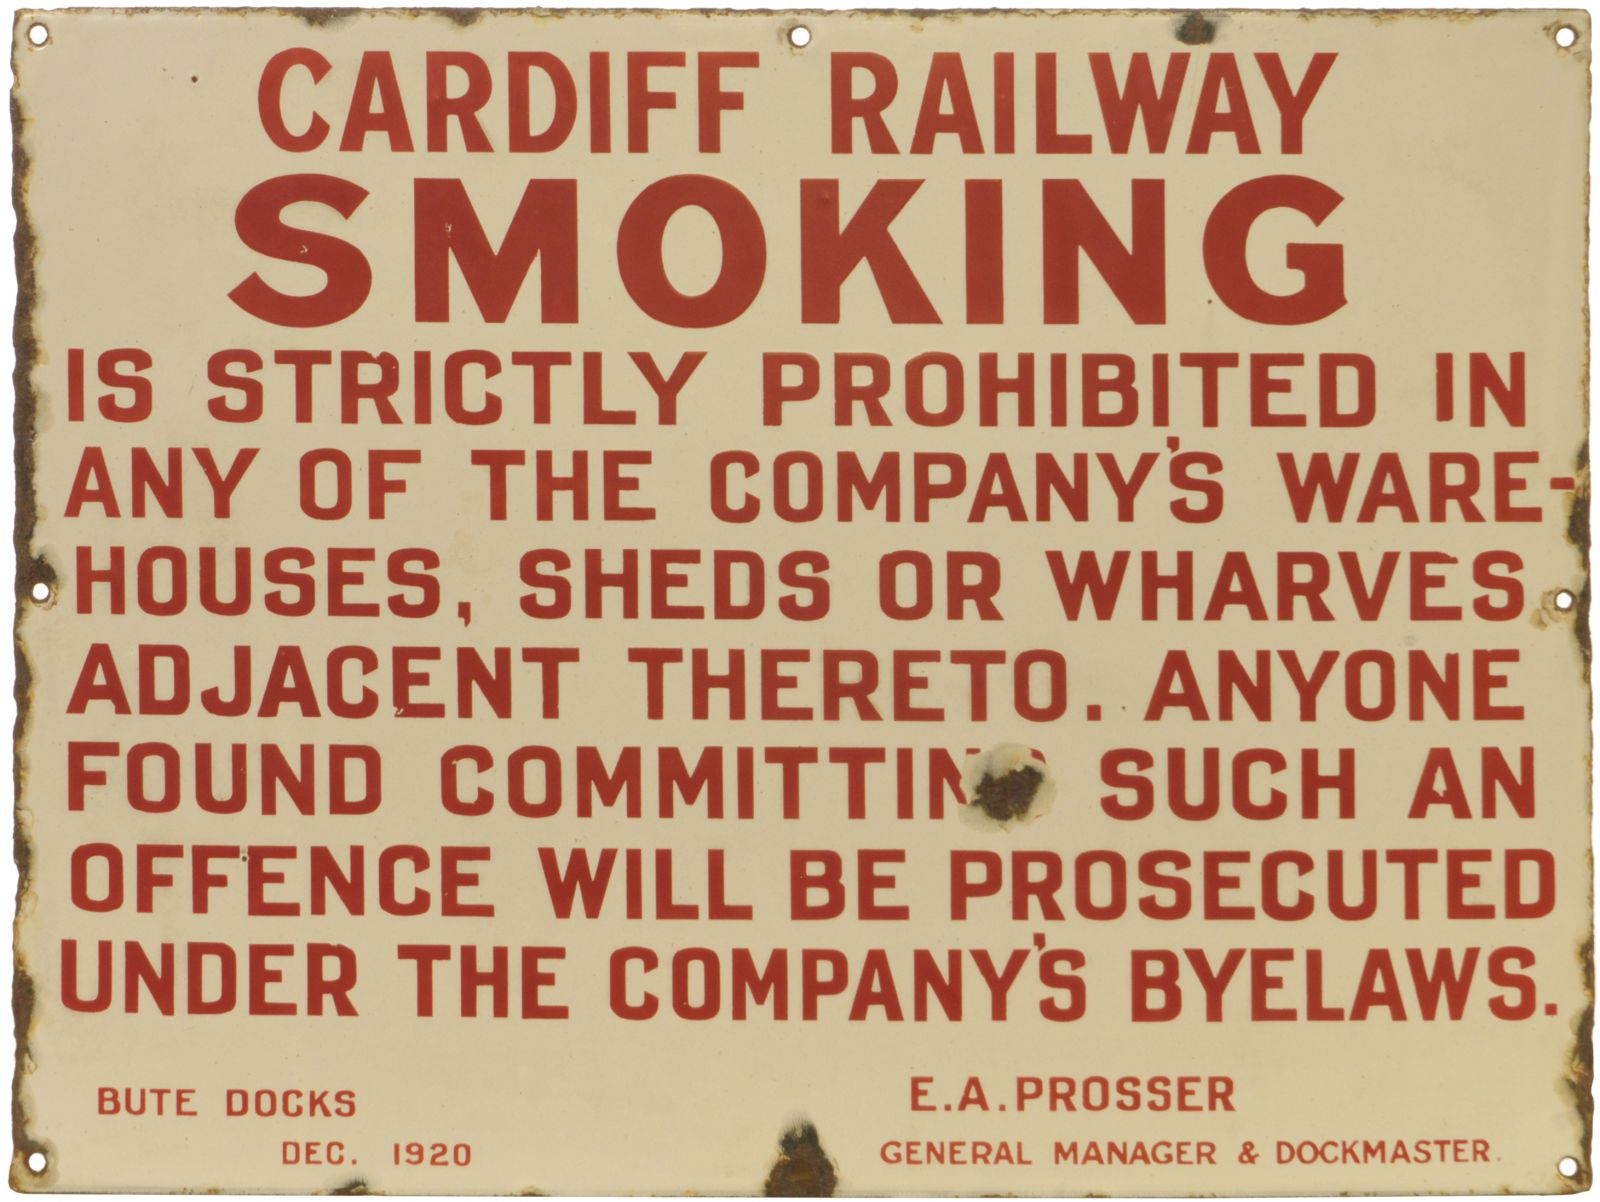 Lot 14 - Enamel Railway and Station Signs, Cardiff Railway, Smoking: A Cardiff Railway notice, Smoking in